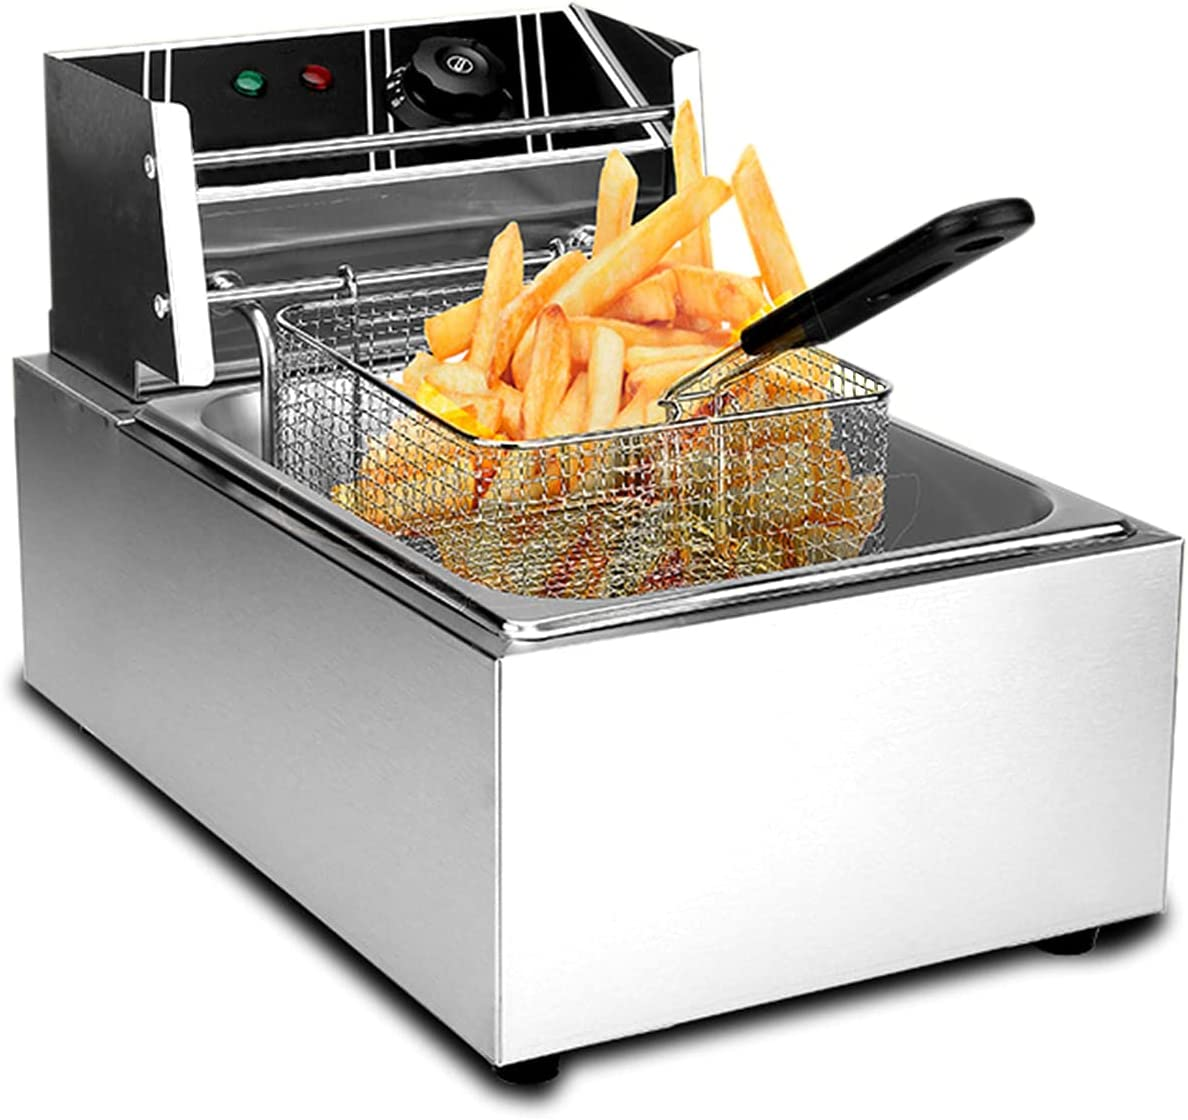 ColouredPeas Commercial Deep Fryer with Basket & Lid 6.3QT/6L Stainless Steel Double Countertop Tank Electric Deep Fryer for French Fries Fried Chicken Machine Plug (Single Countertop/6L)